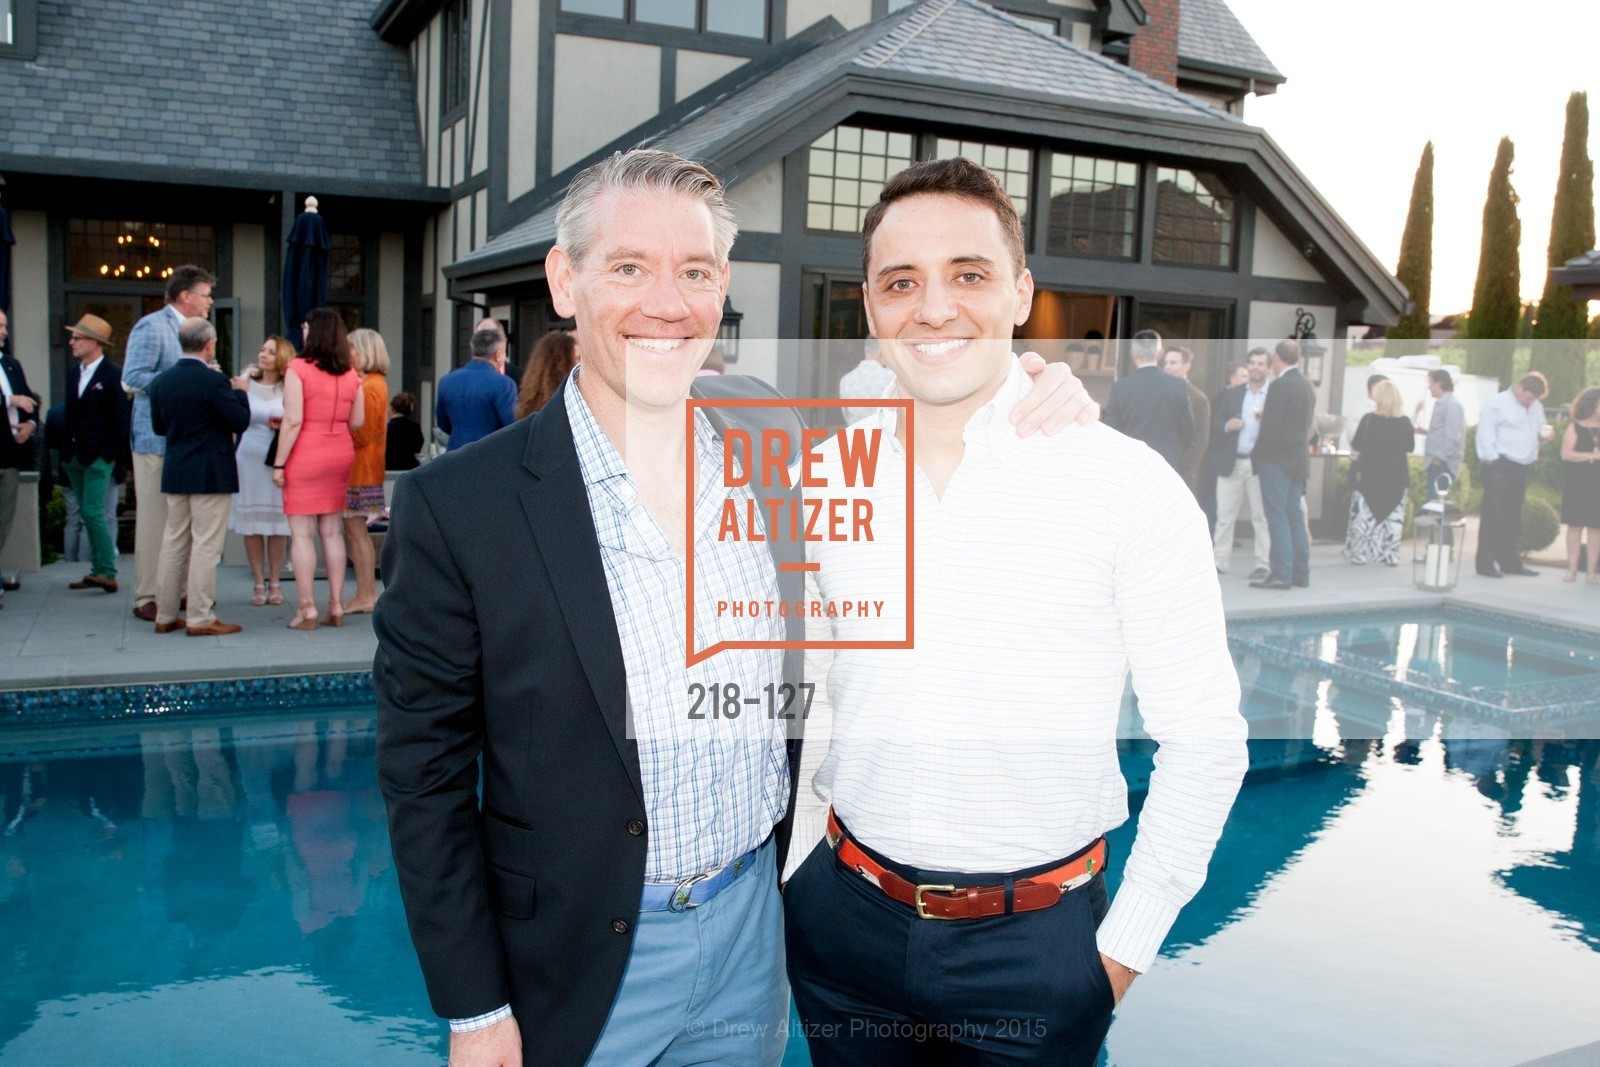 Brian Buenneke, Brian Mehler, An Evening in the Vineyard hosted by JACK CALHOUN & TRENT NORRIS, Jack Calhoun & Trent Norris Vineyard. 3393 Dry Creek Road, Healdsburg CA 95448, May 22nd, 2015,Drew Altizer, Drew Altizer Photography, full-service agency, private events, San Francisco photographer, photographer california